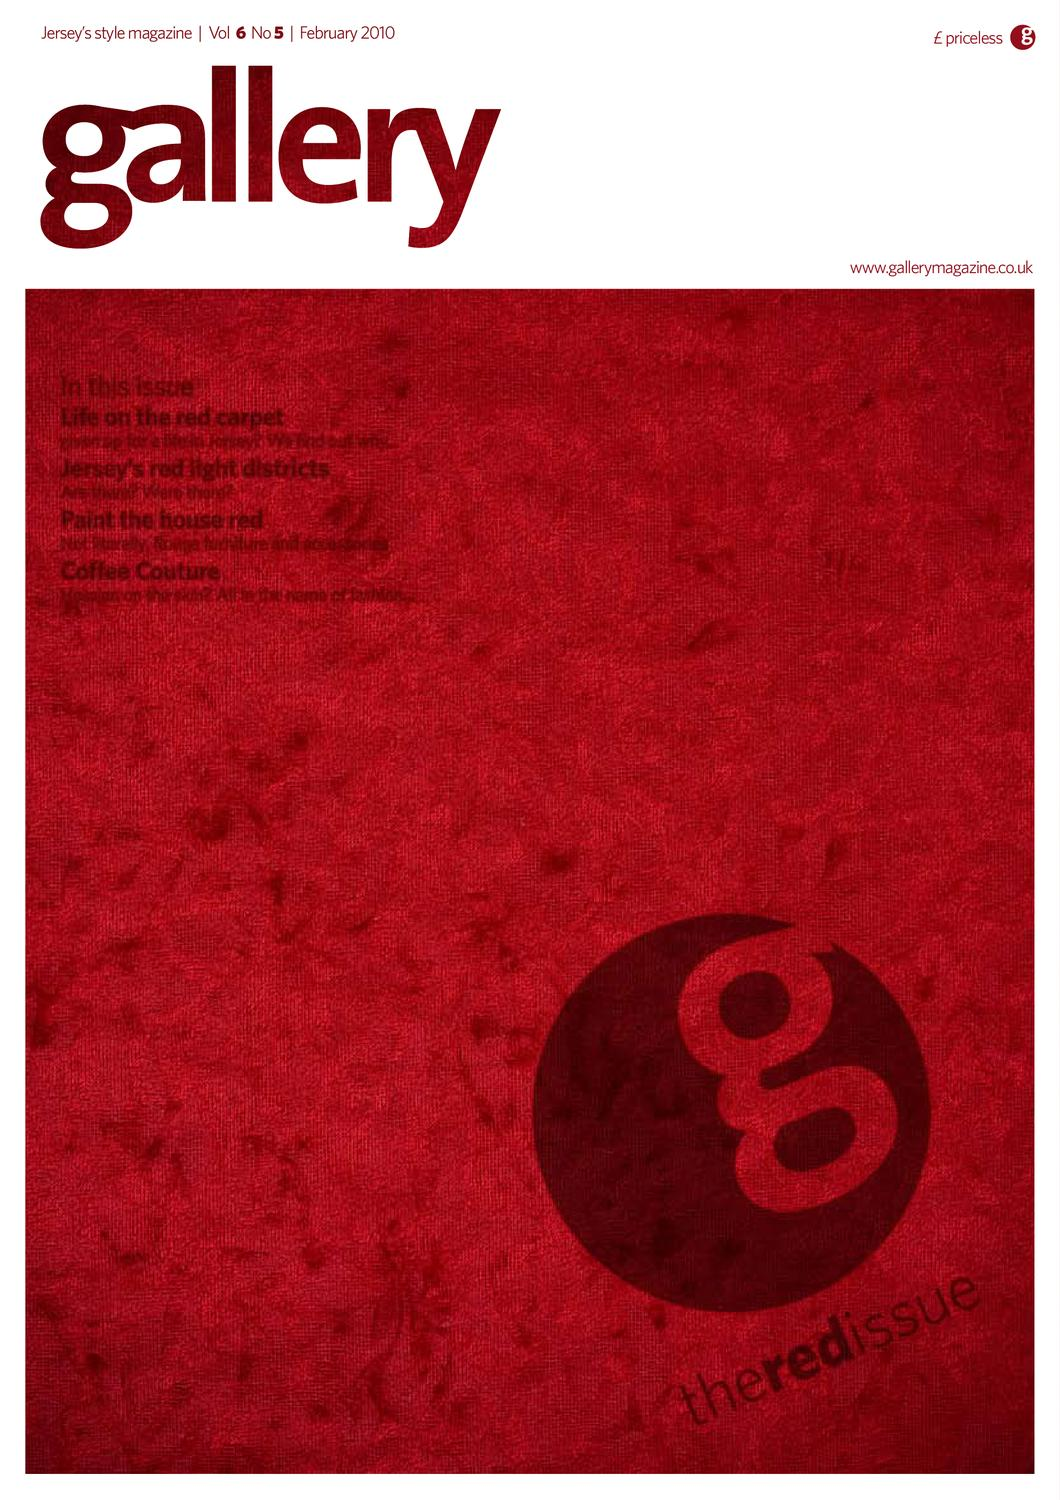 6674cecc549 Gallery 60  The Red Edition  February 2010 by factory - issuu